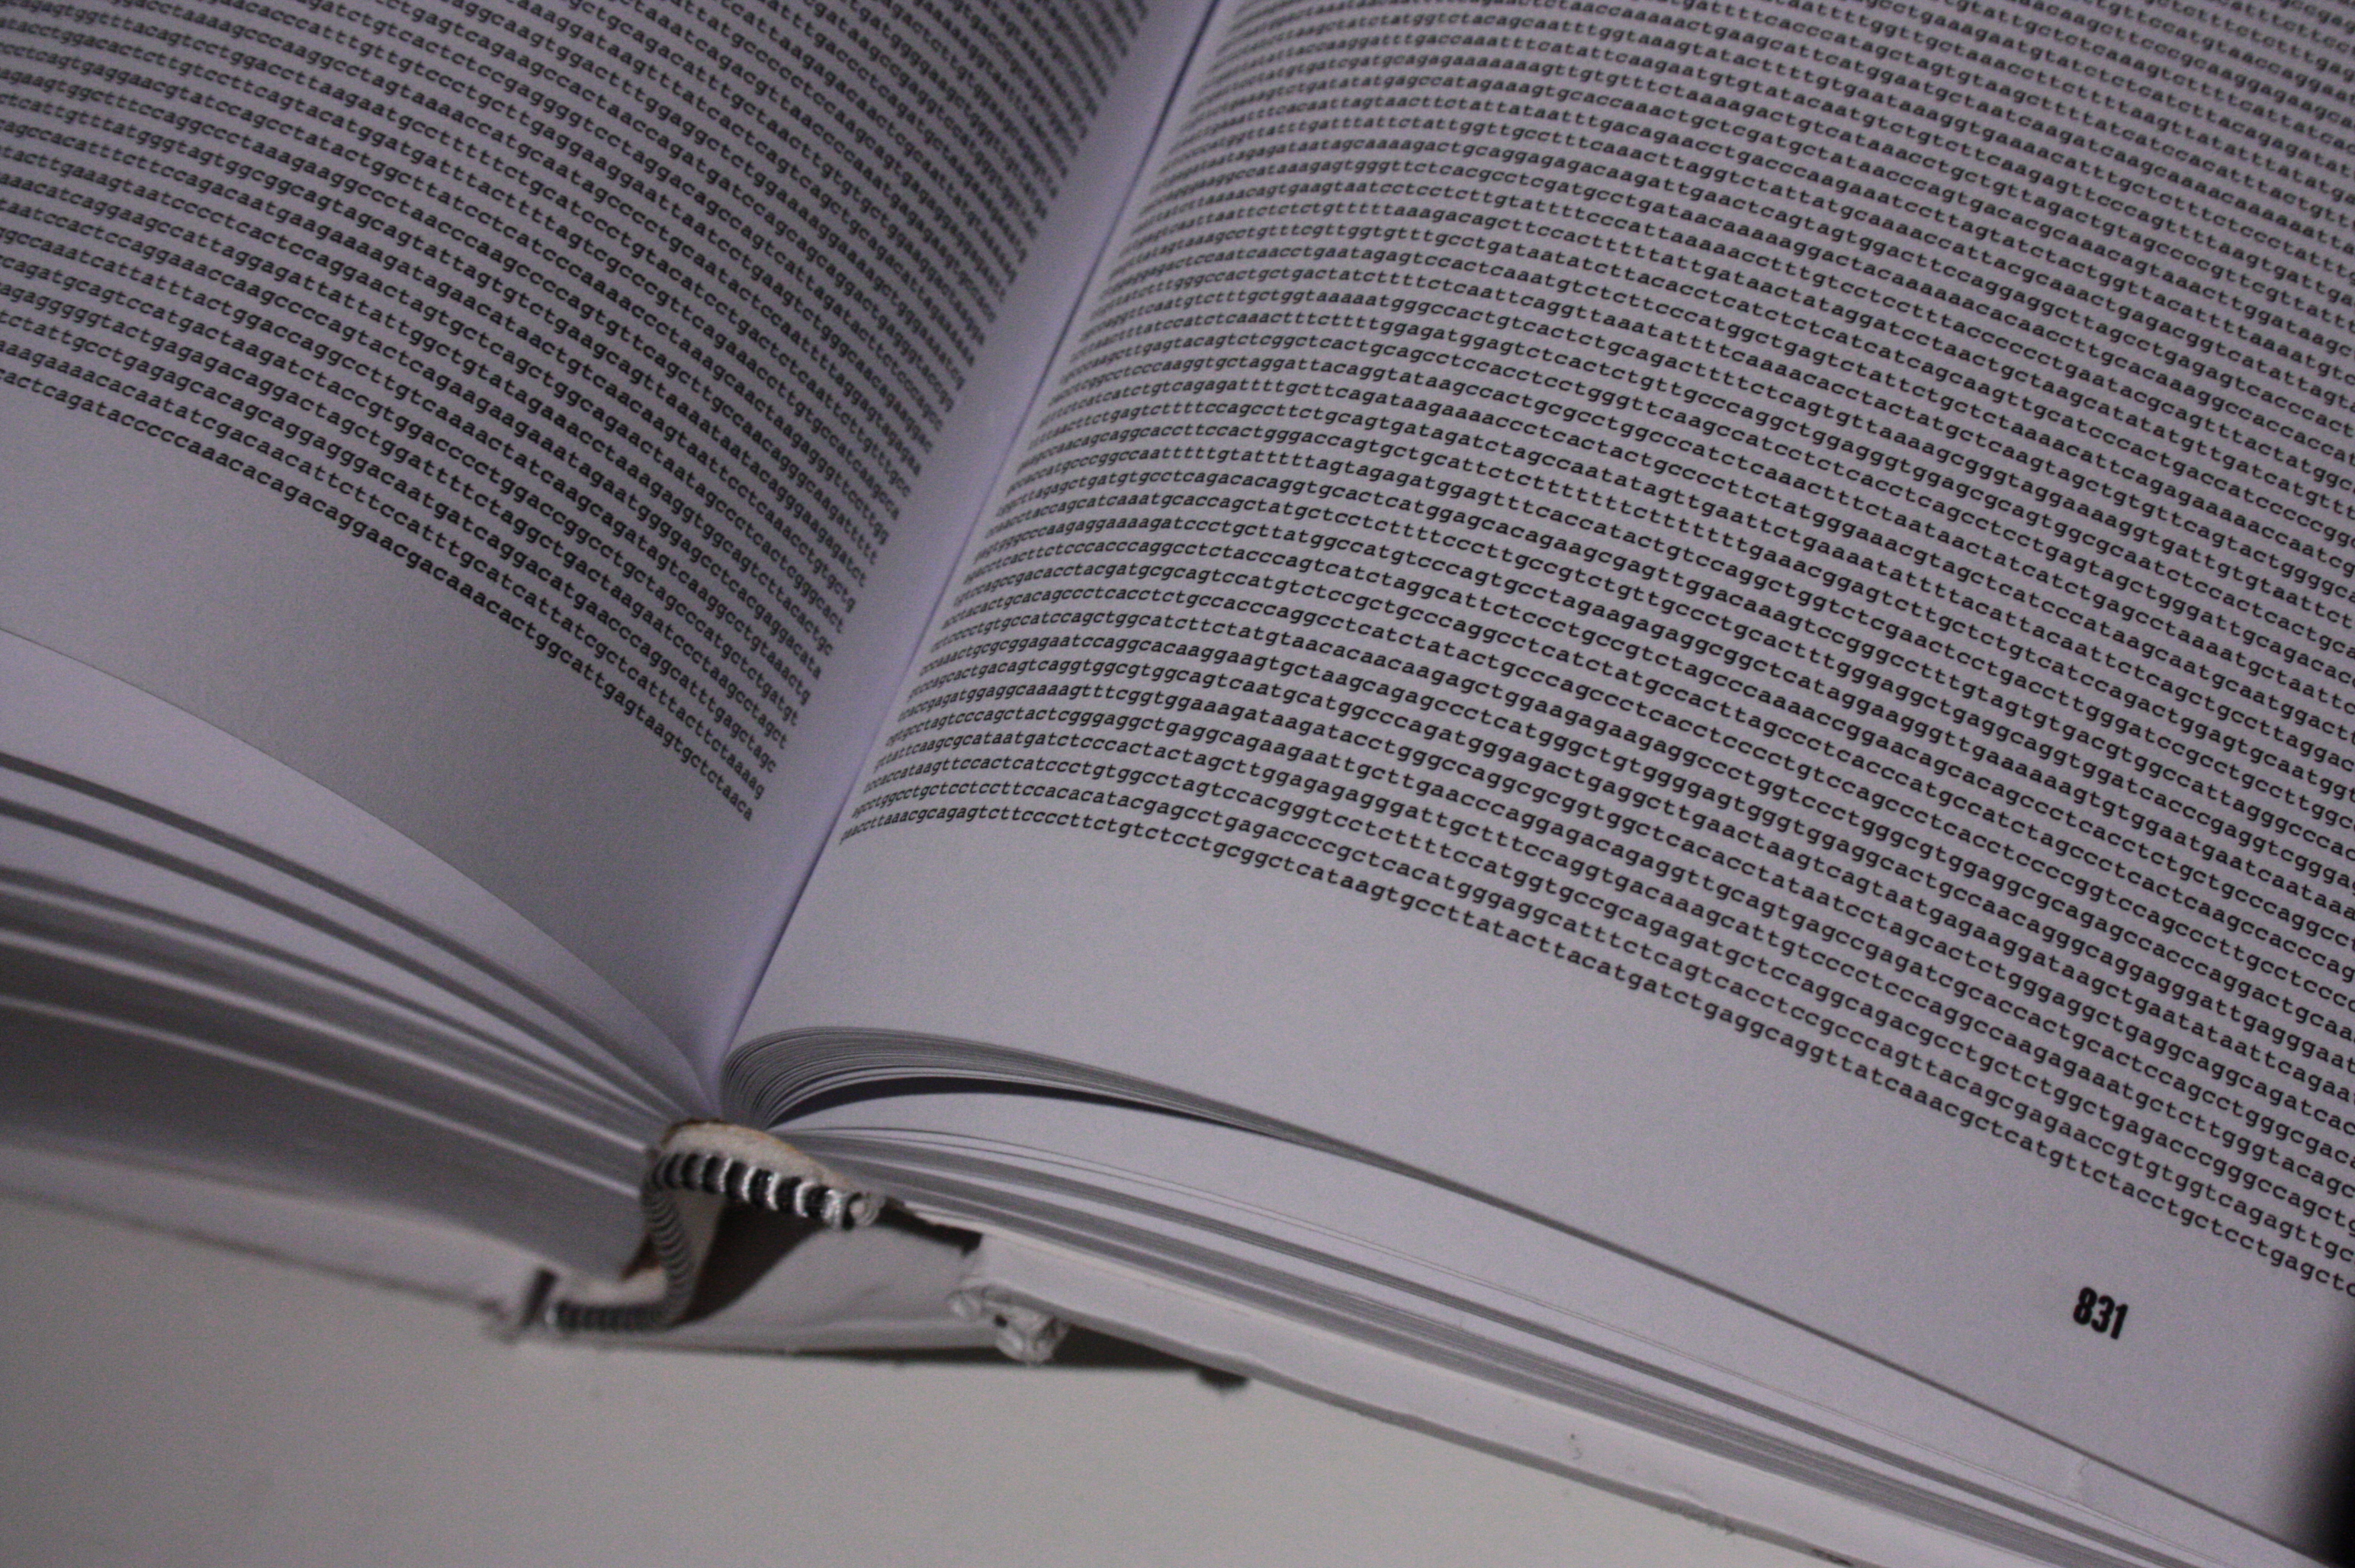 file the genome sequence when printed fills a huge book of close